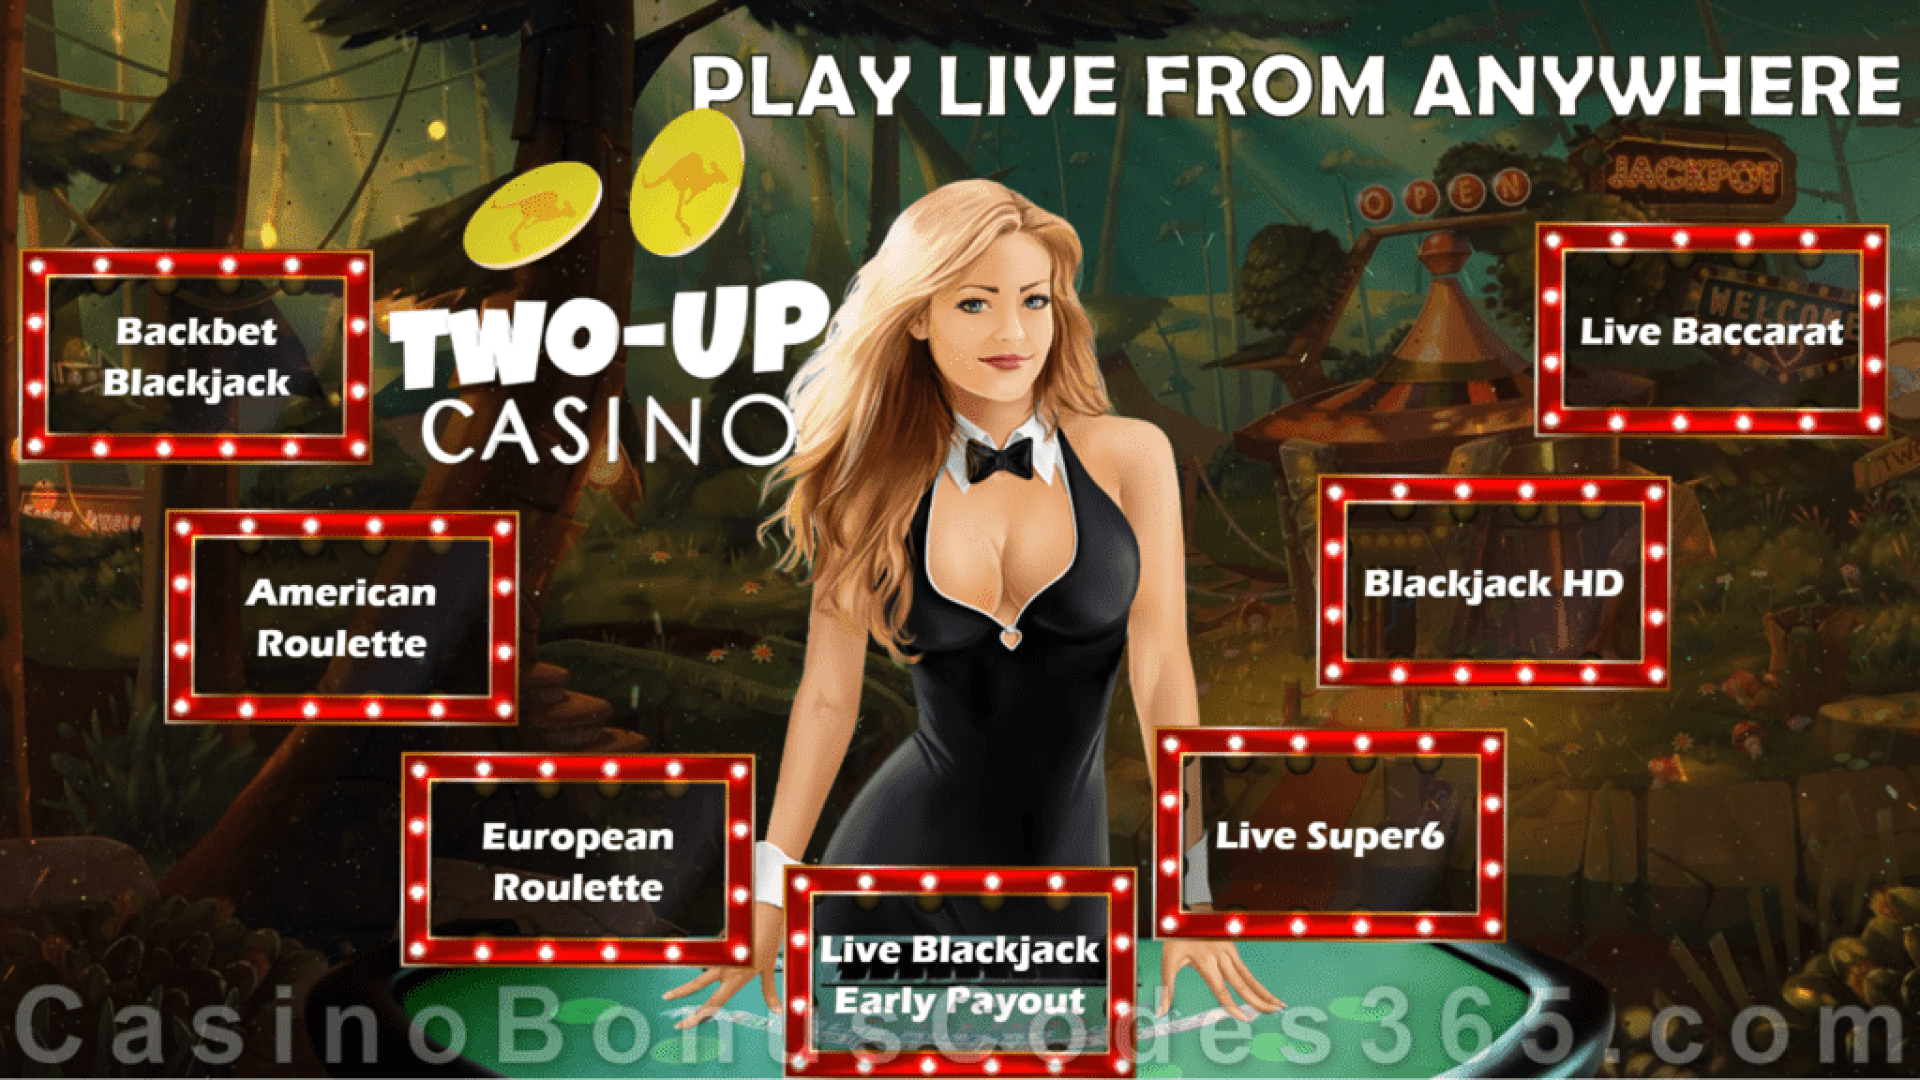 Two-up Casino Live Dealer Games